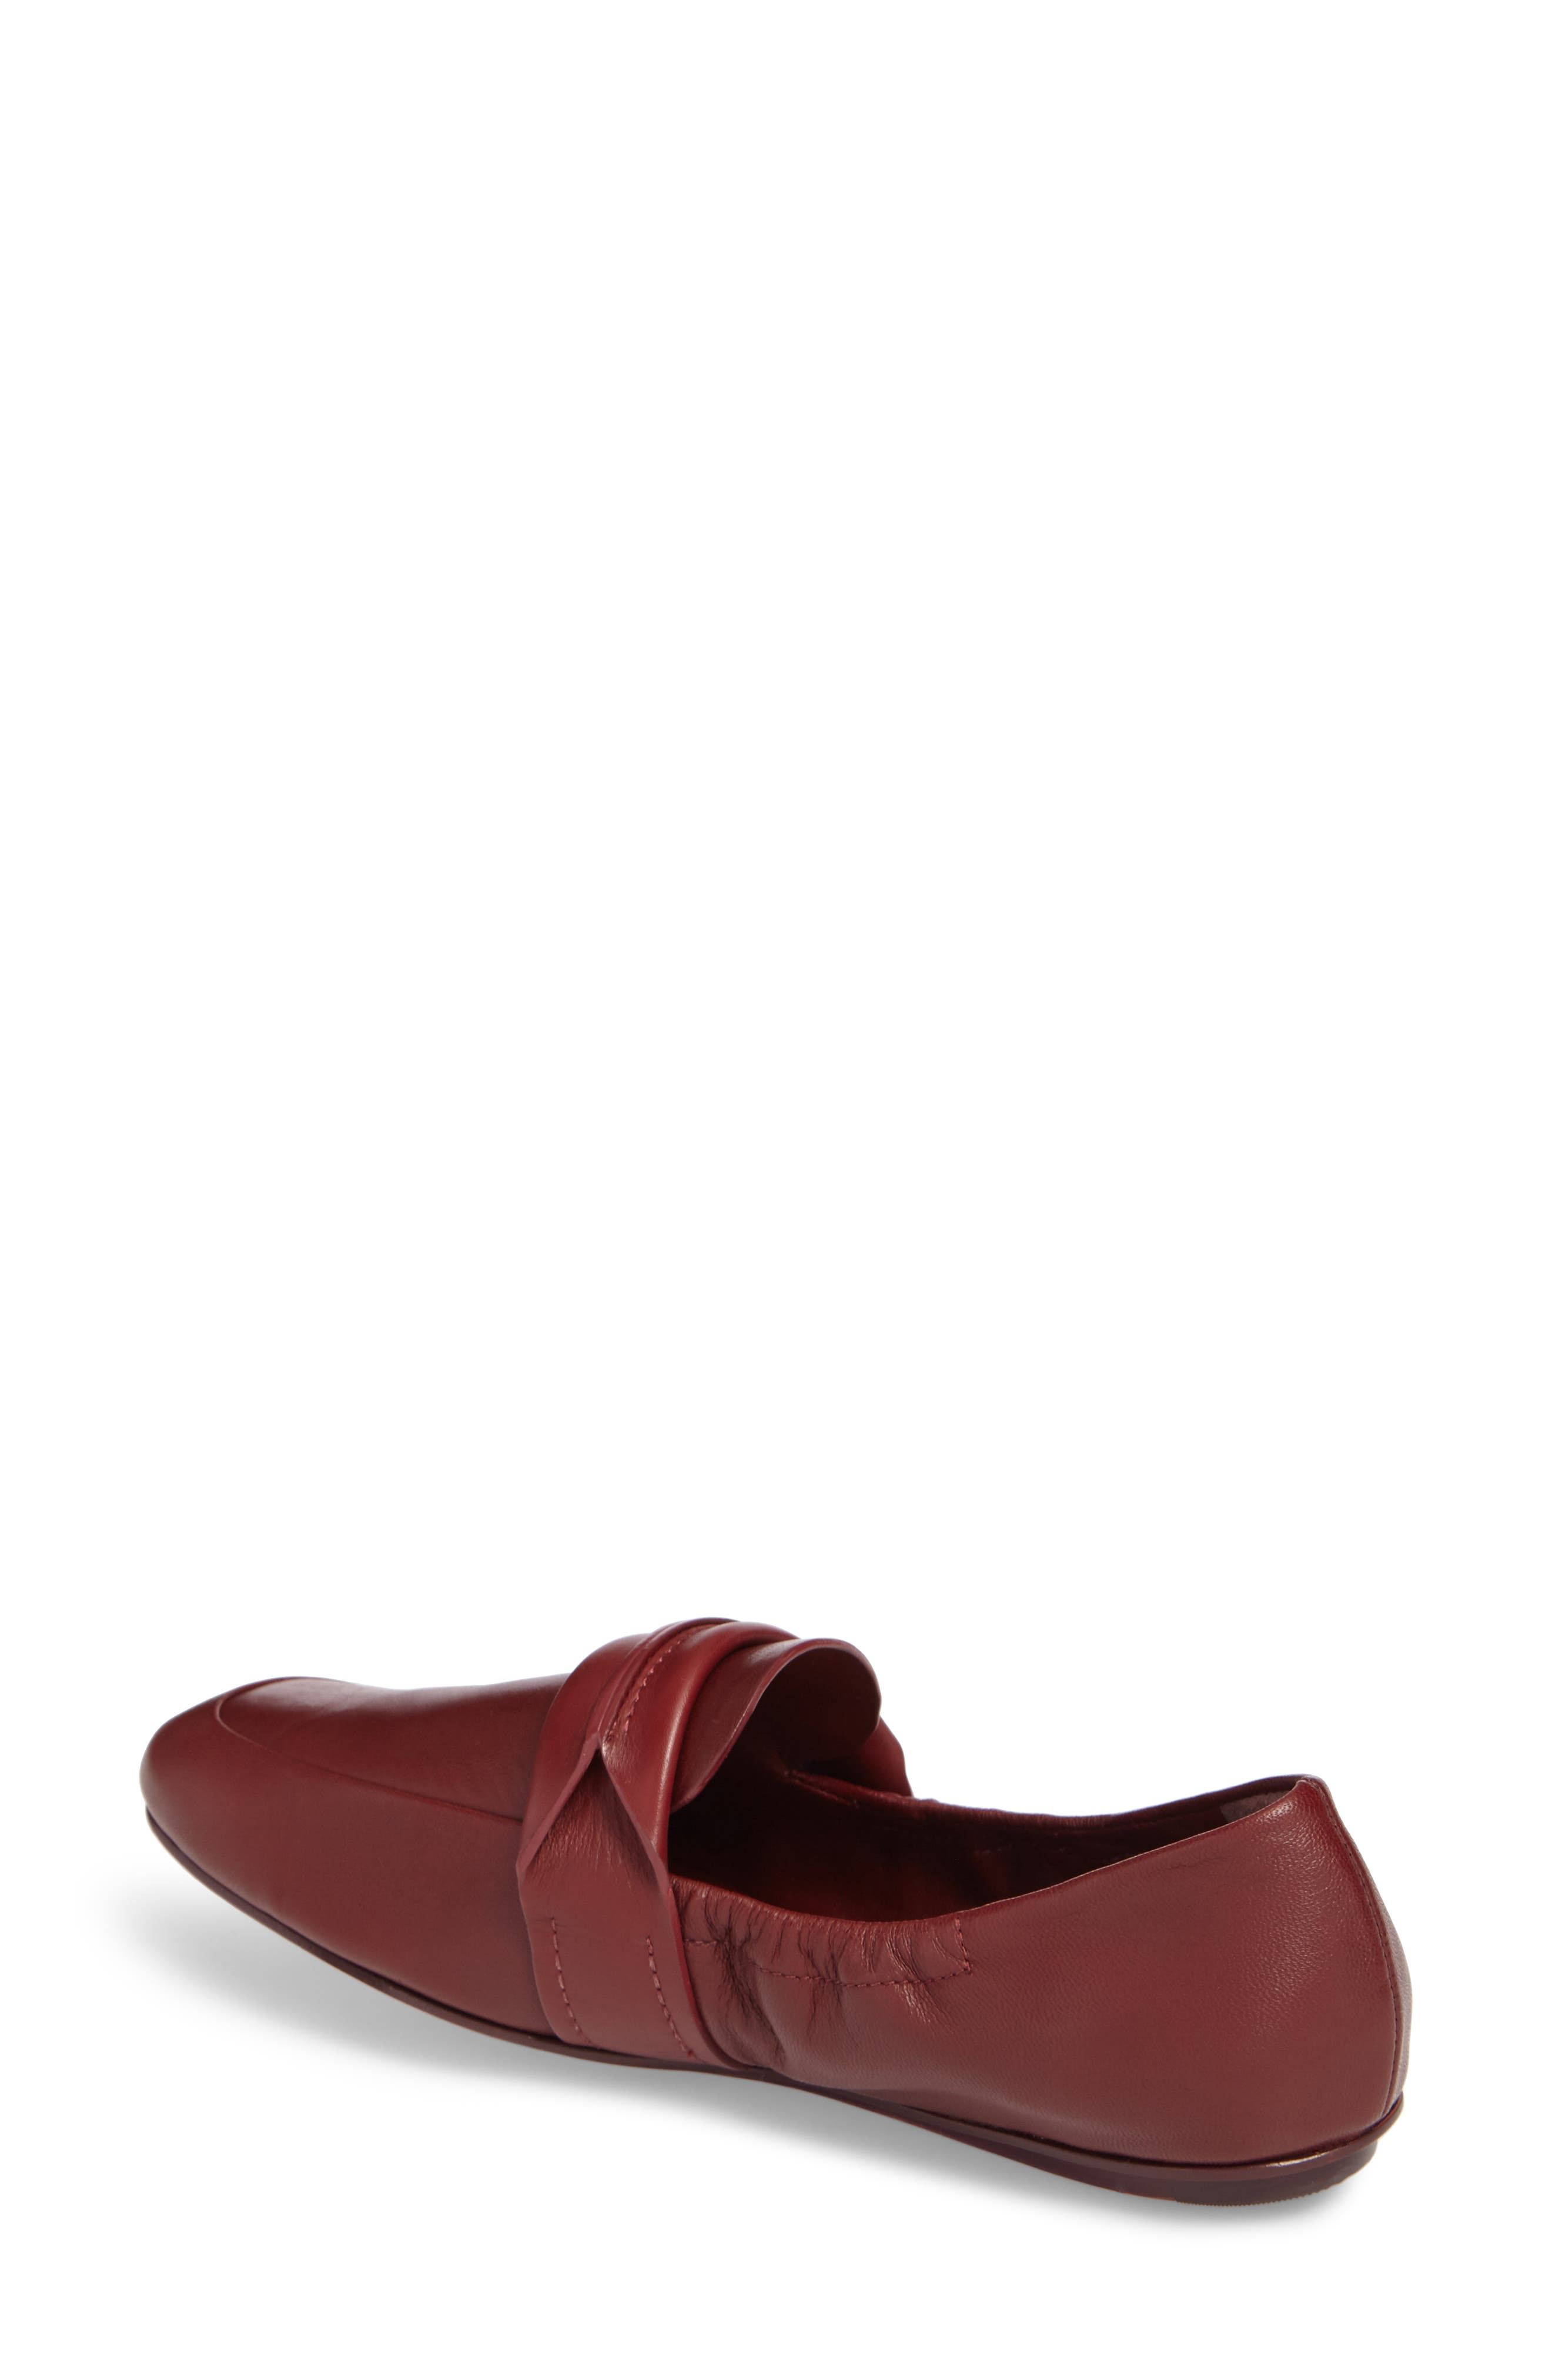 Alternate Image 2  - Mercedes Castillo Erin Loafer Flat (Women)